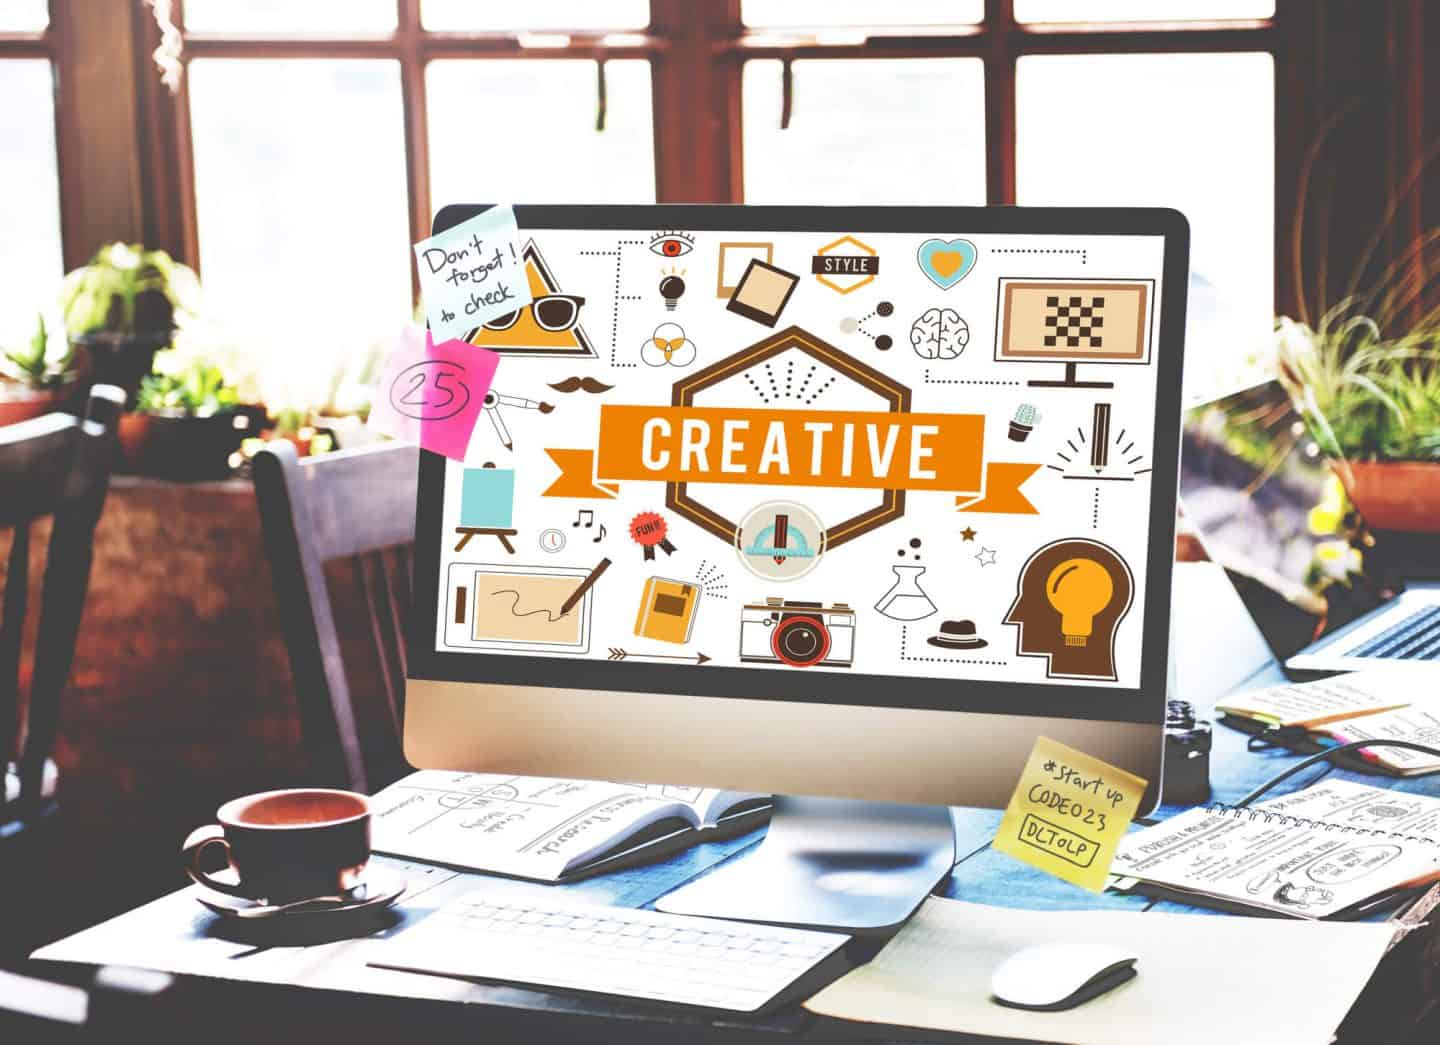 Struggling Creative? Here's How to Use Your Skills to Make Money Quickly